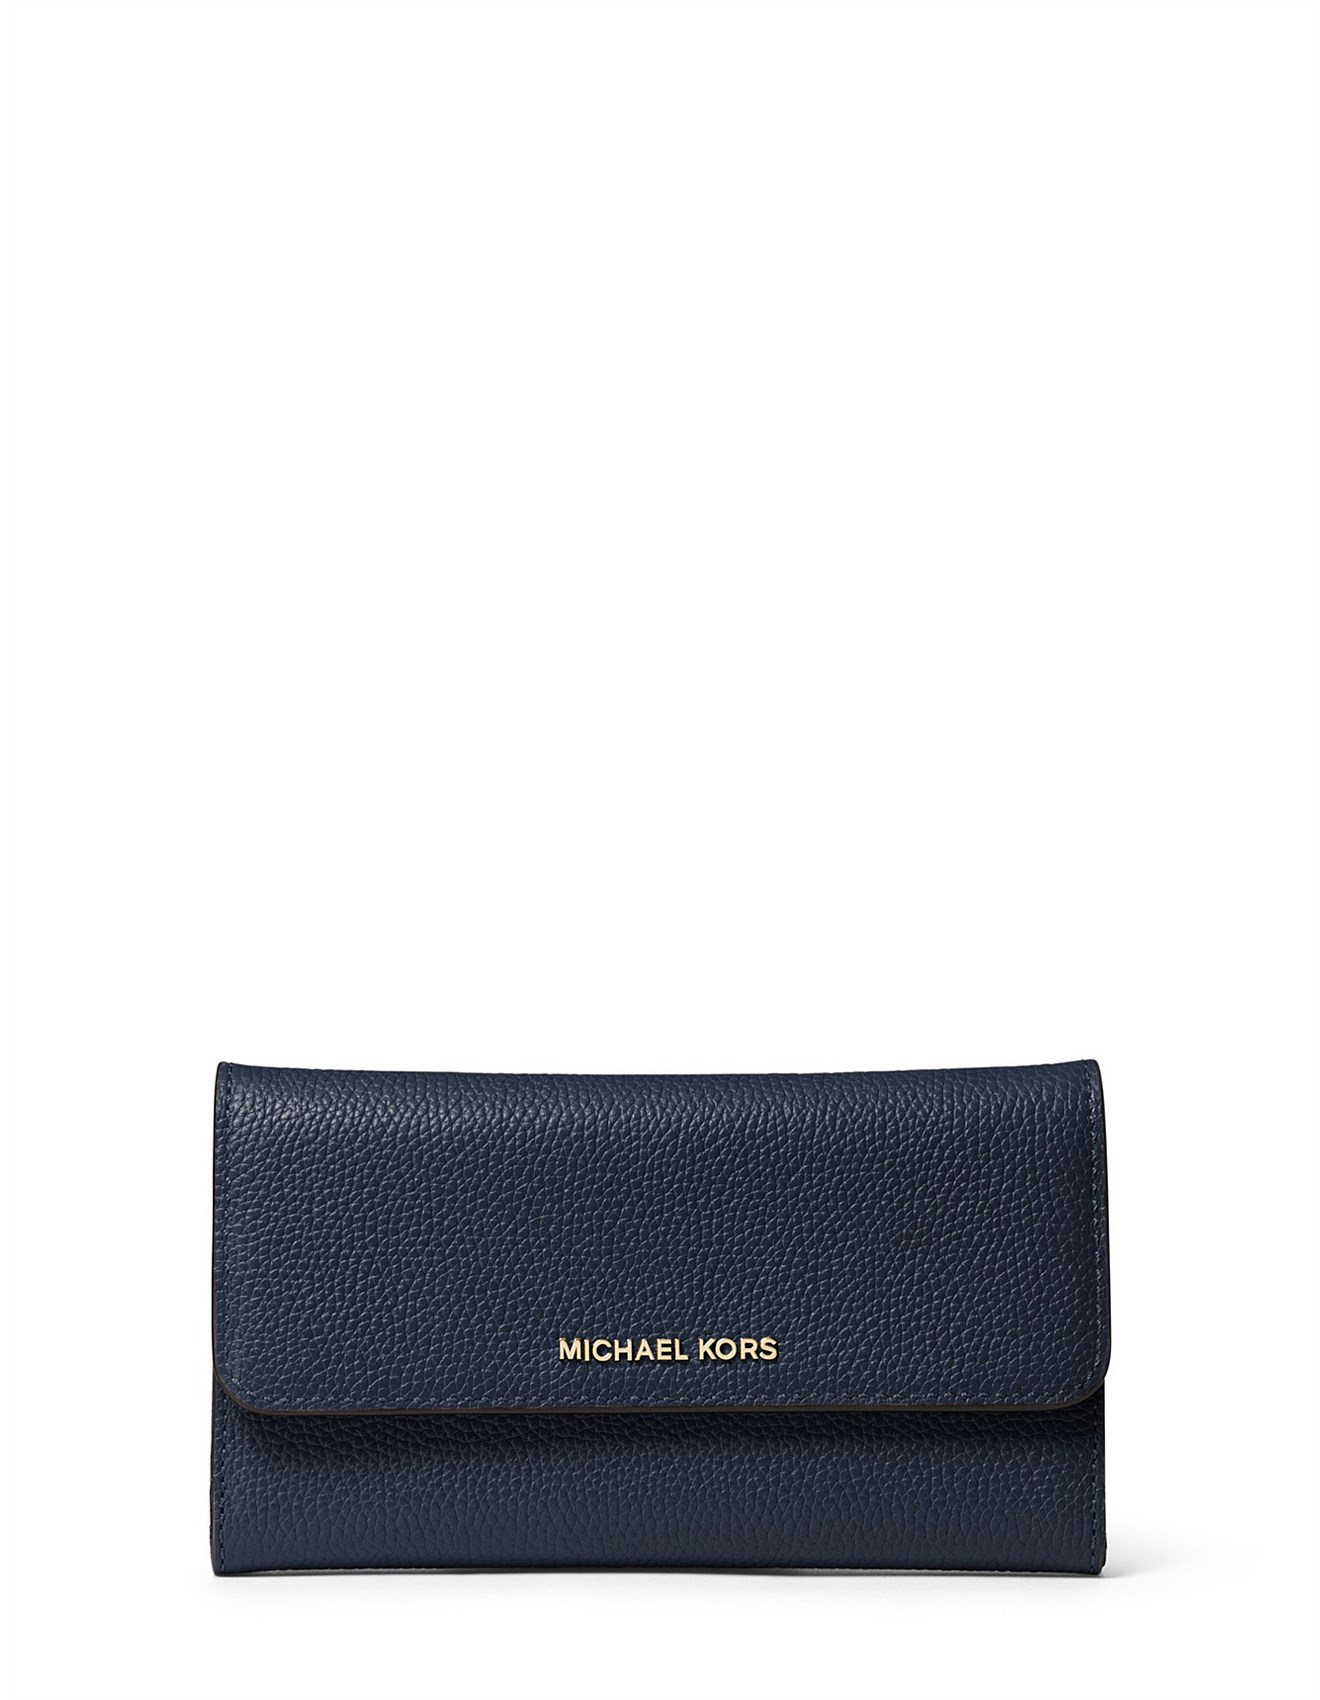 424338869be4 Mercer Tri-fold Leather Wallet